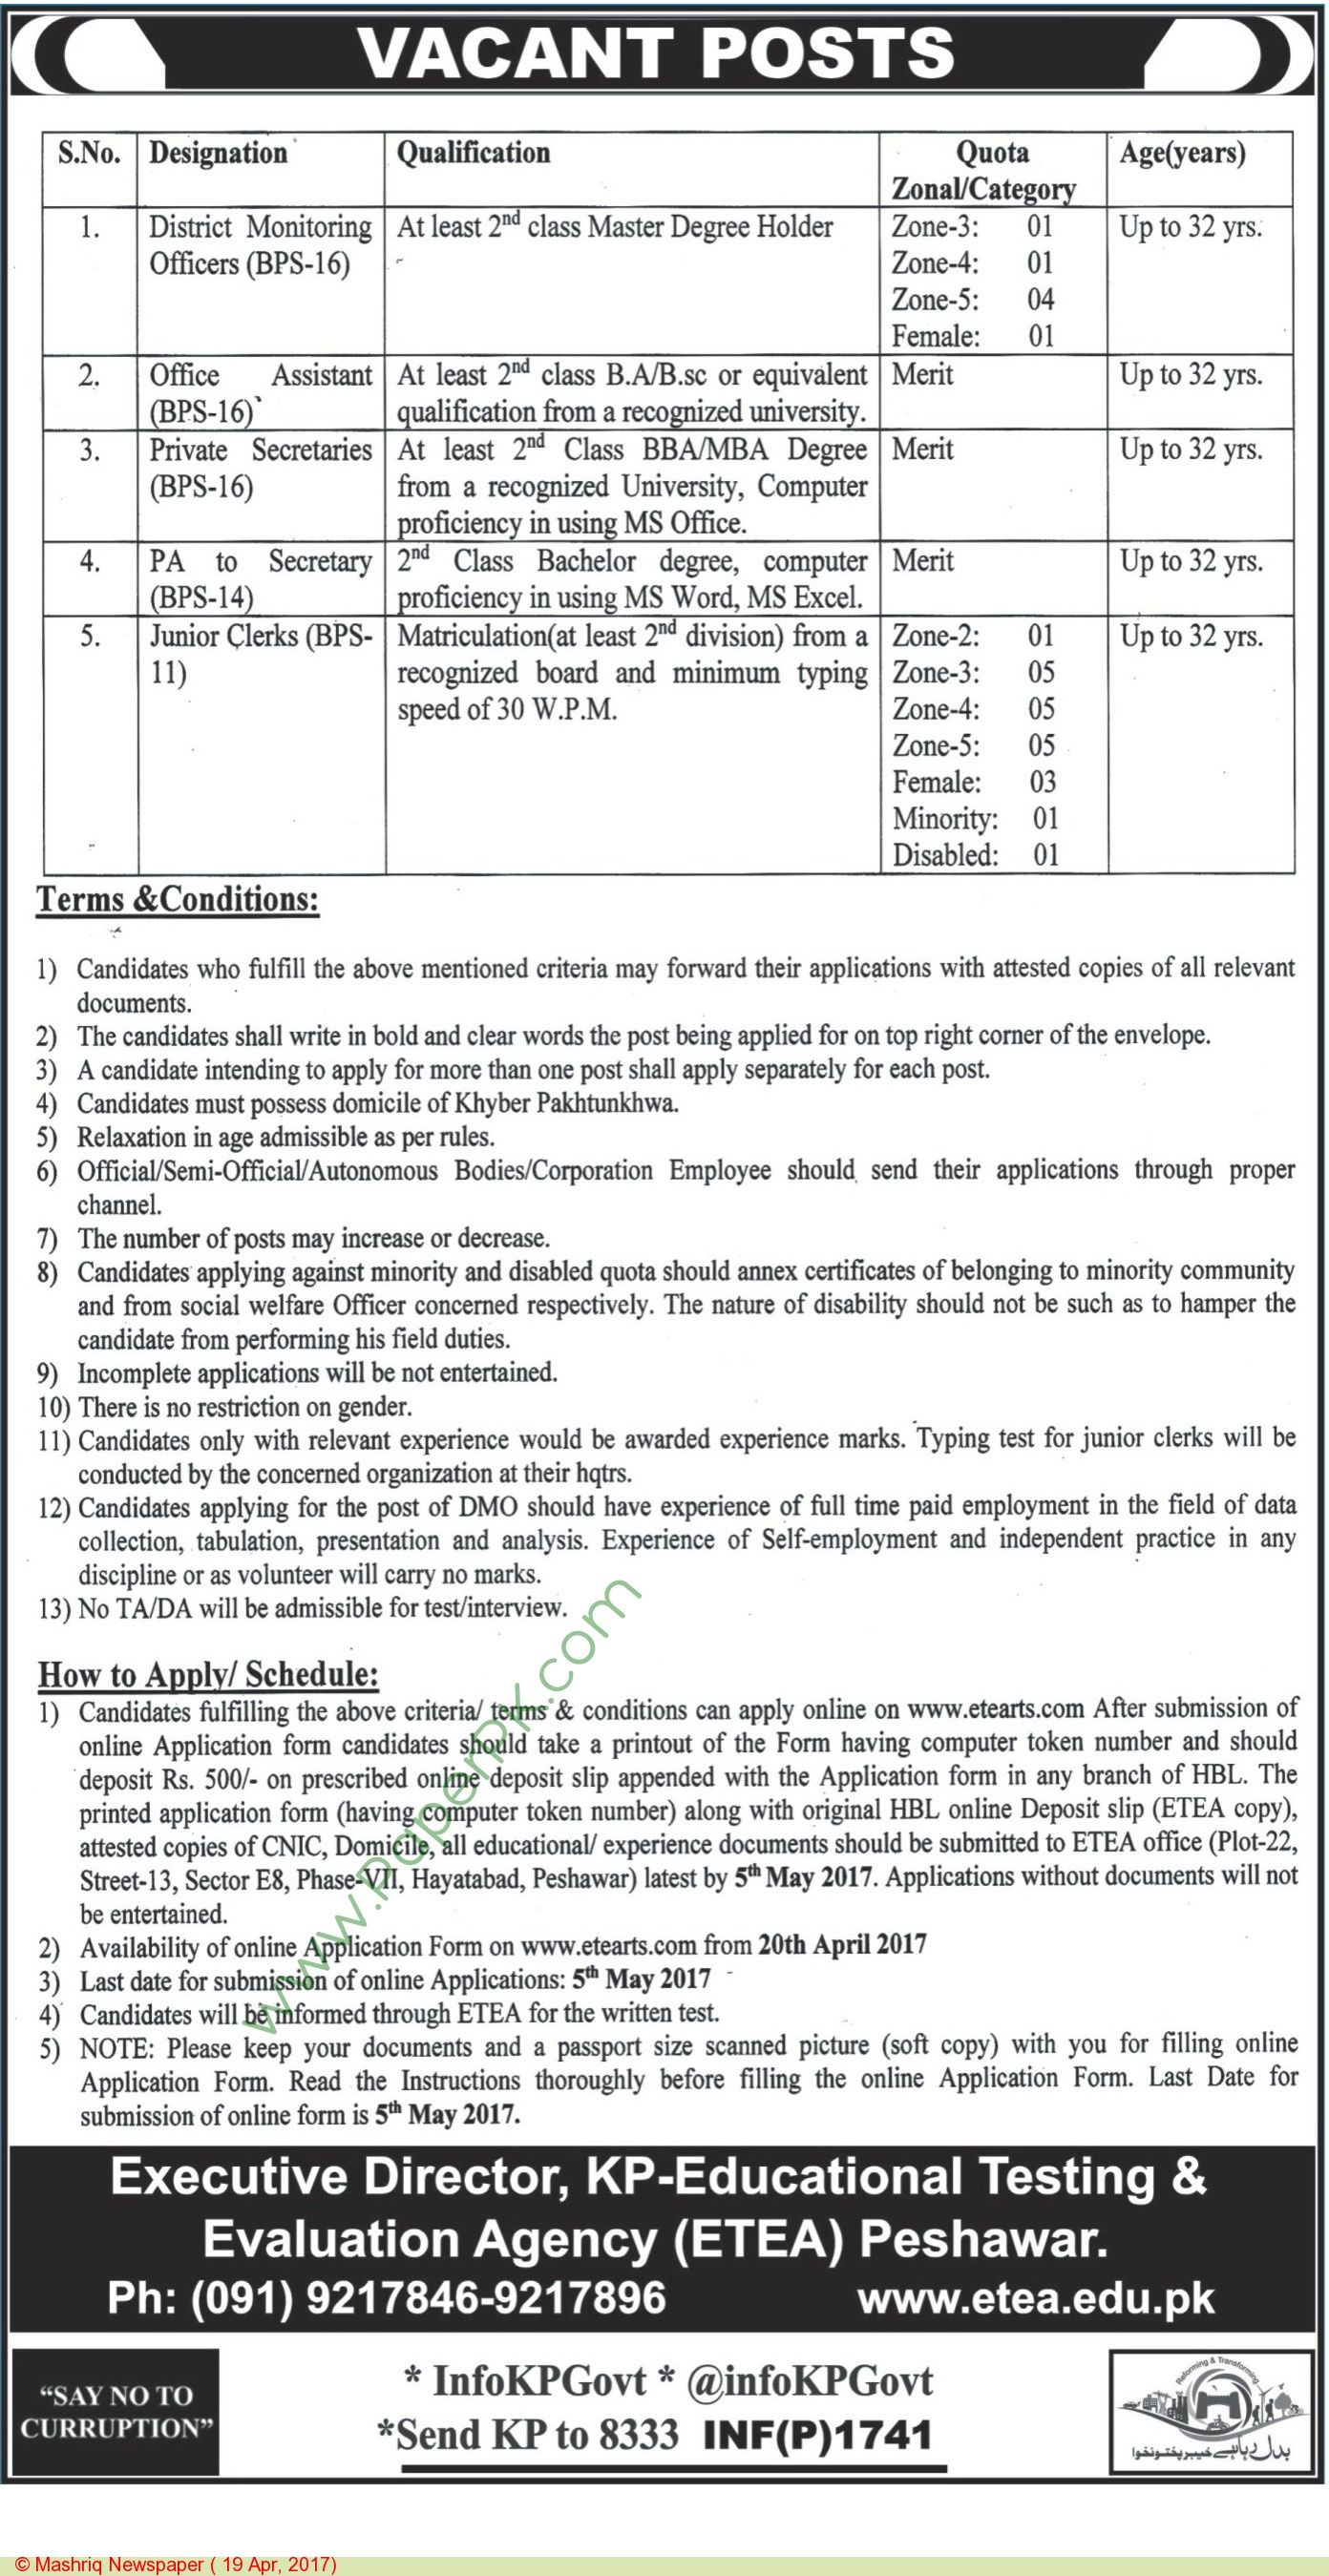 Kp educational testing evaluation agency peshawar jobs jobs in kp educational testing evaluation agency peshawar jobs falaconquin